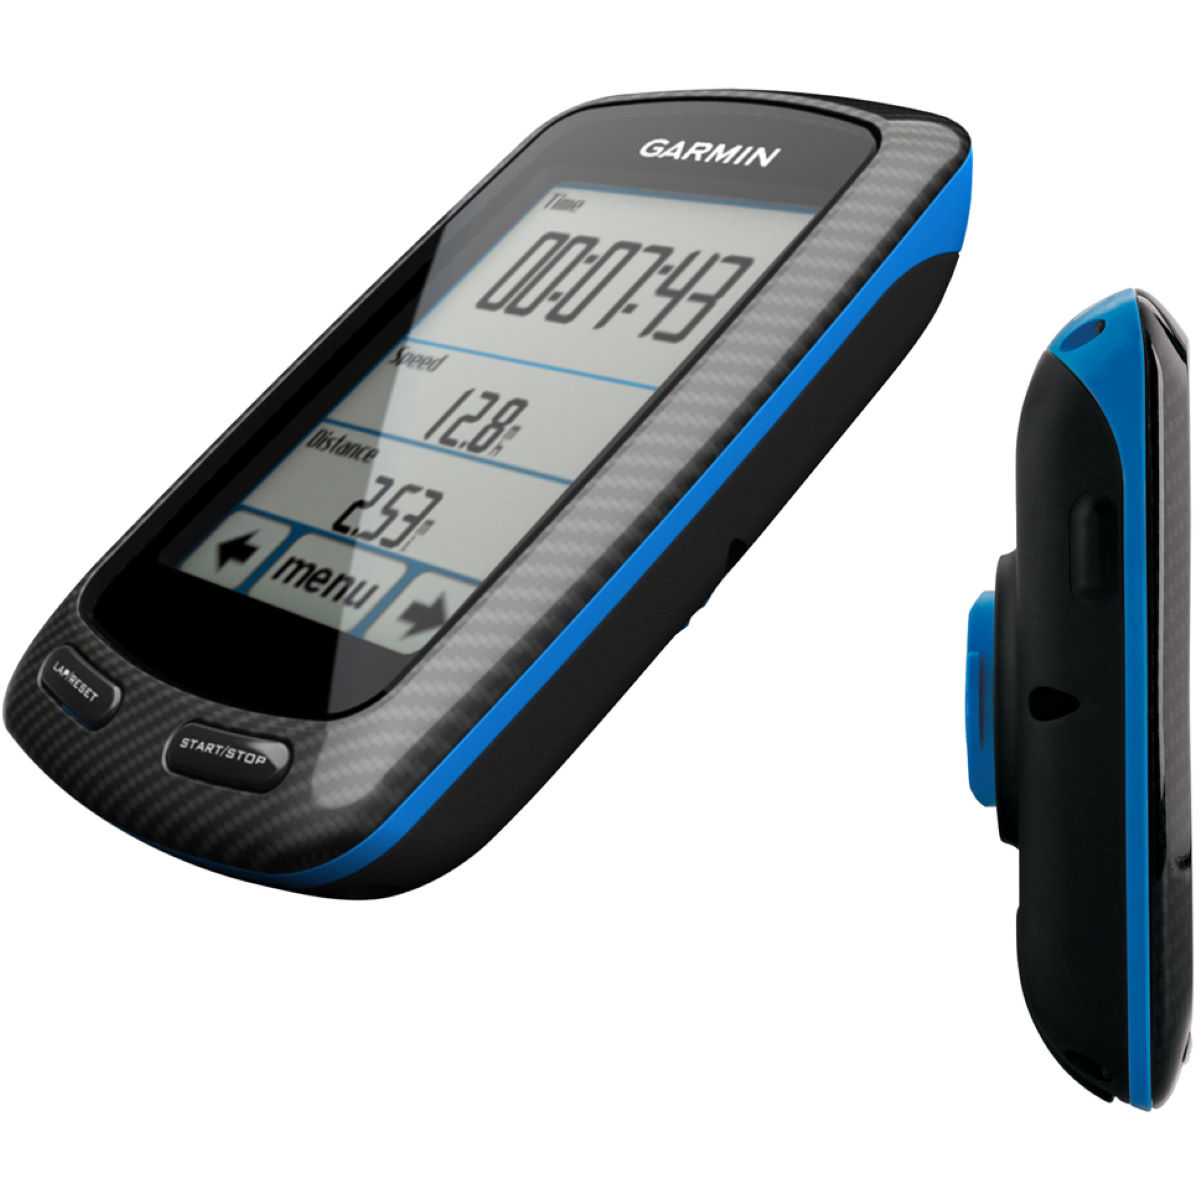 Garmin Edge 800 GPS Performance & Navigation Bundle